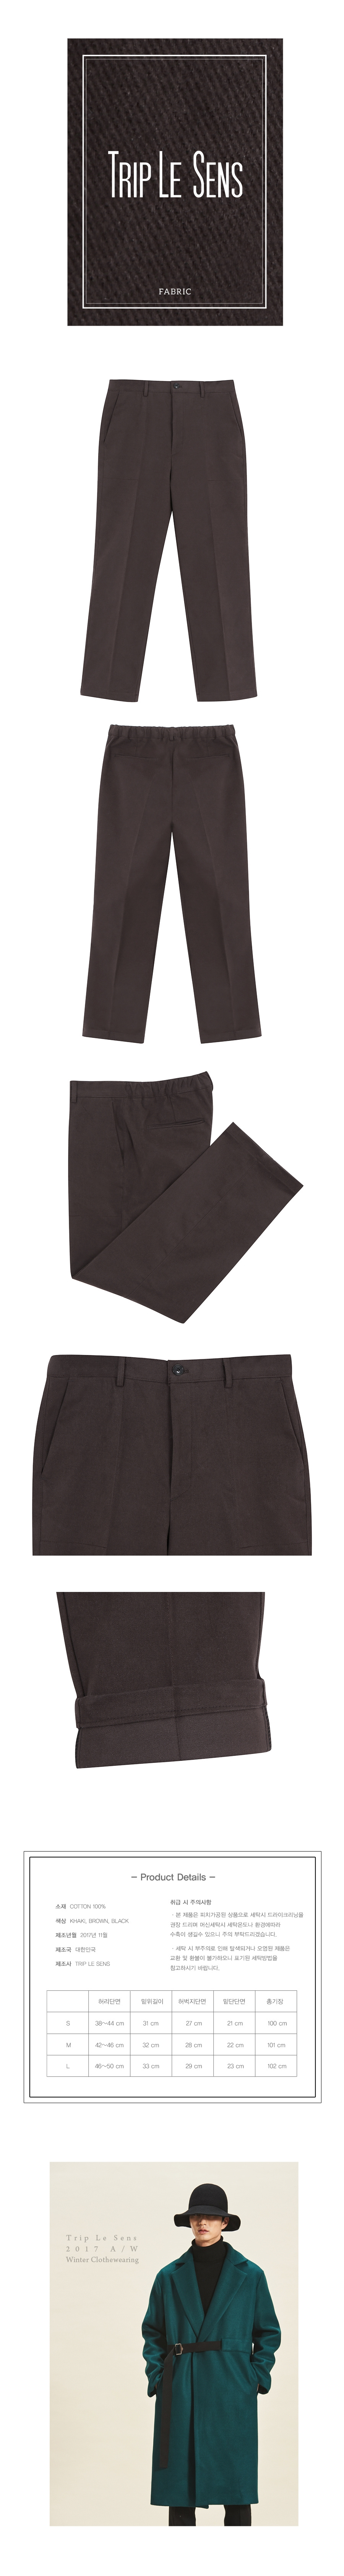 트립르센스(TRIP LE SENS) Warm Cotton Stitches Wide Pants BROWN